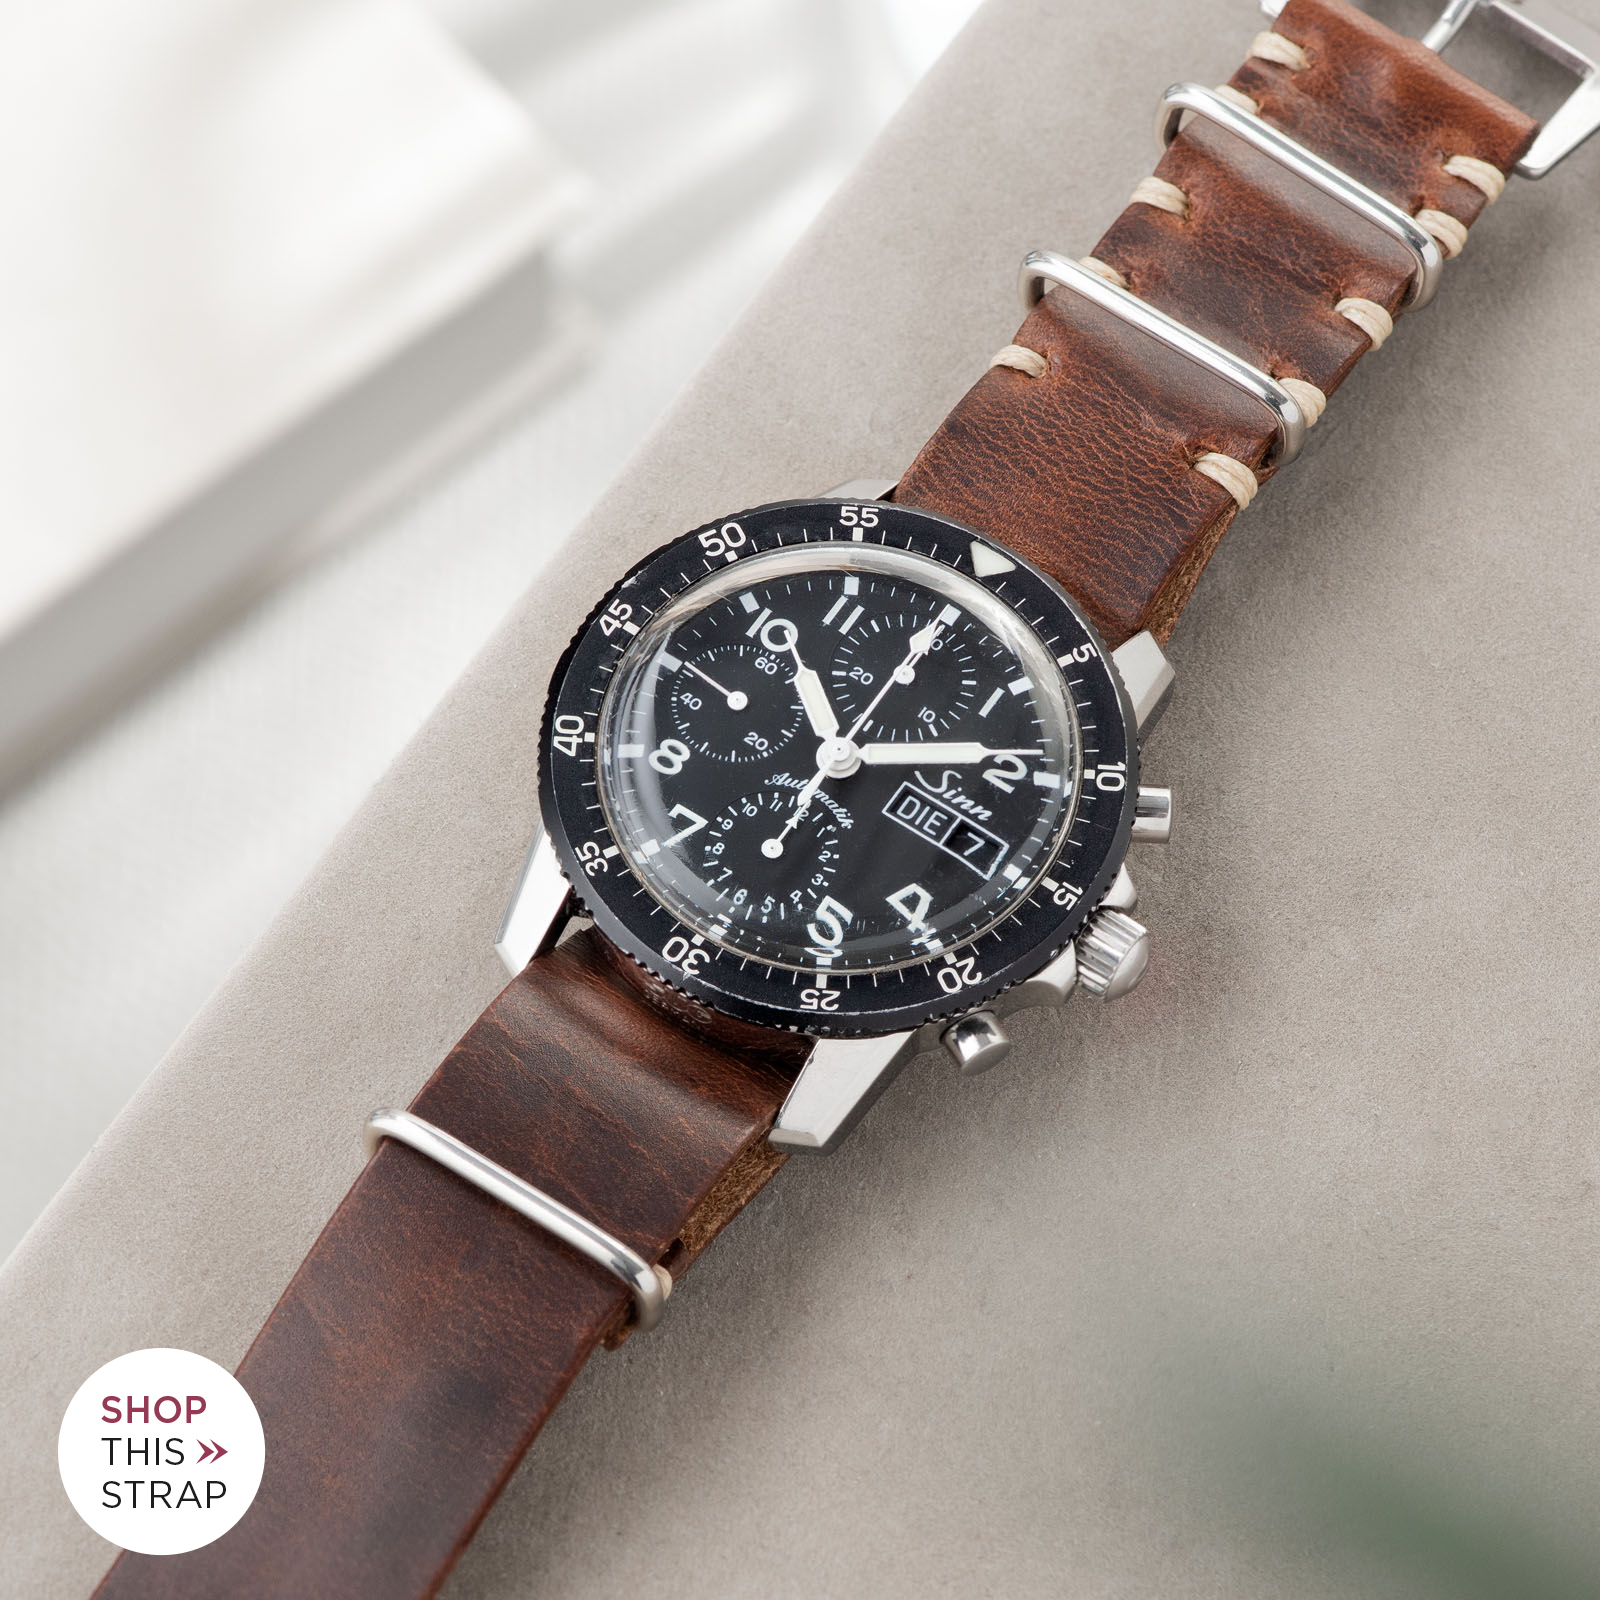 Bulang and Sons_Strap Guide_Sinn 103_Siena Brown Nato Leather Watch Strap